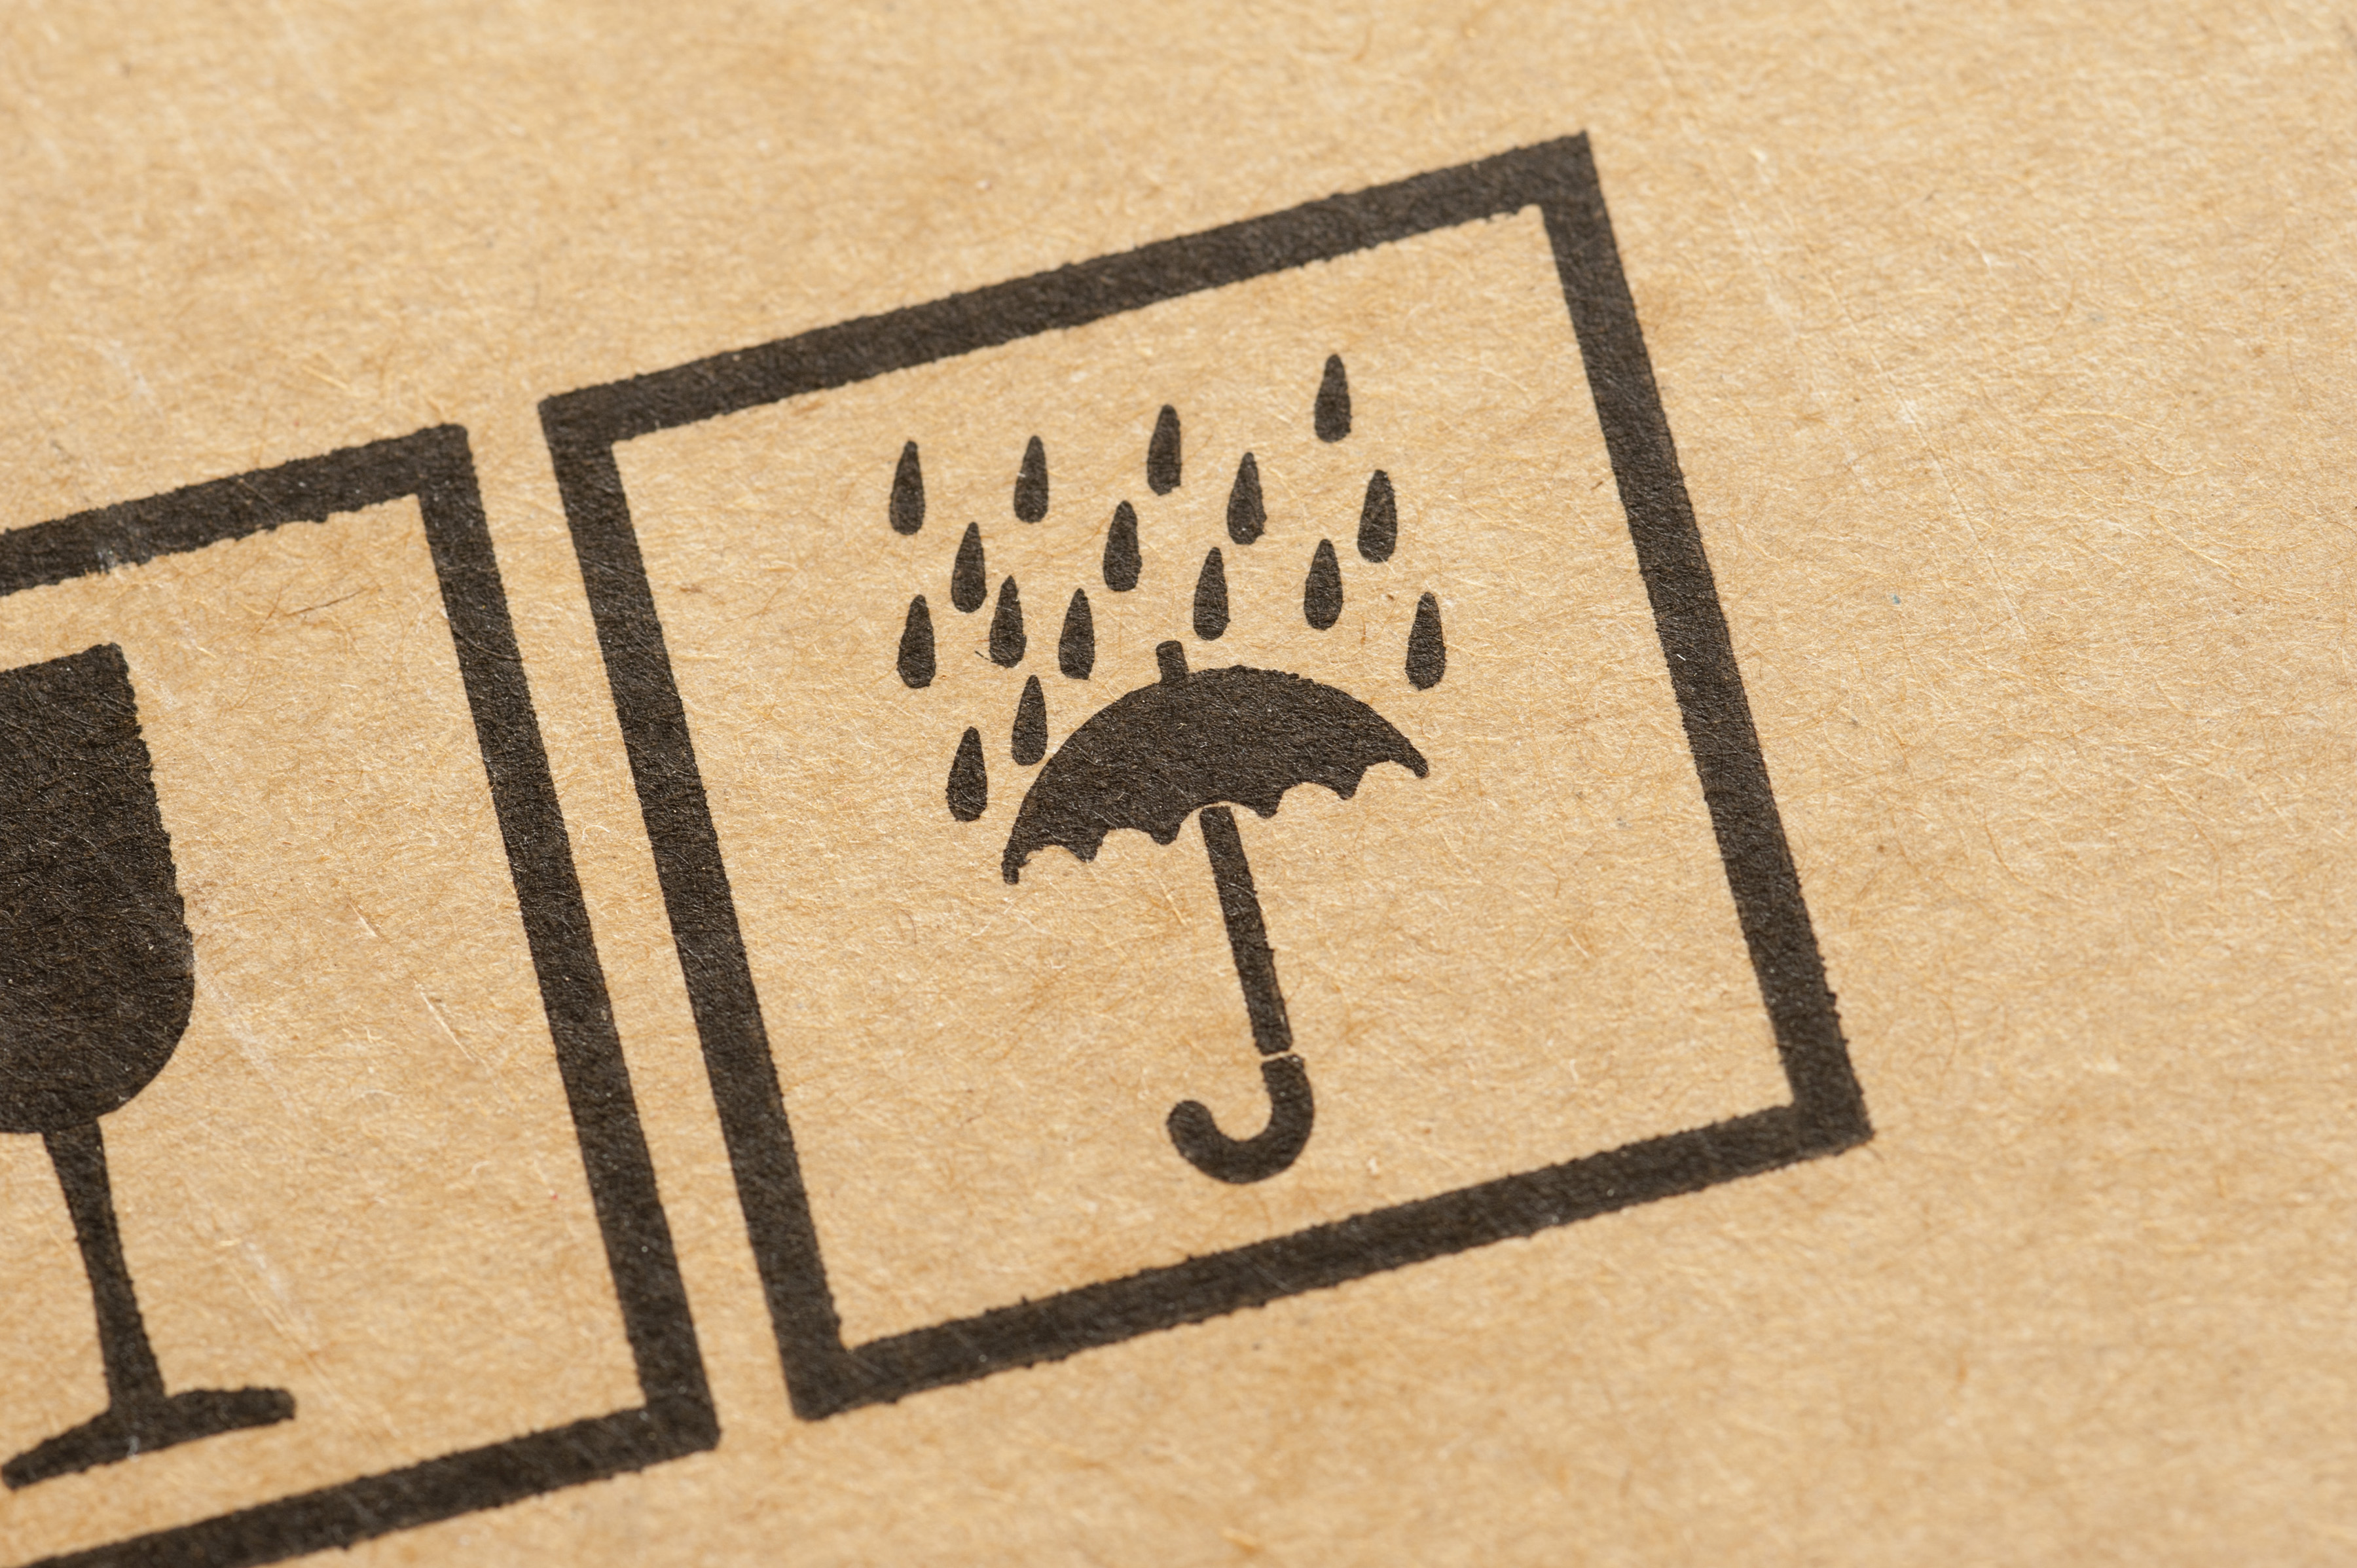 Do Not Get Wet icon stamped on a box used for packaging, removals or storage with an umbrella and raindrops in a close up view